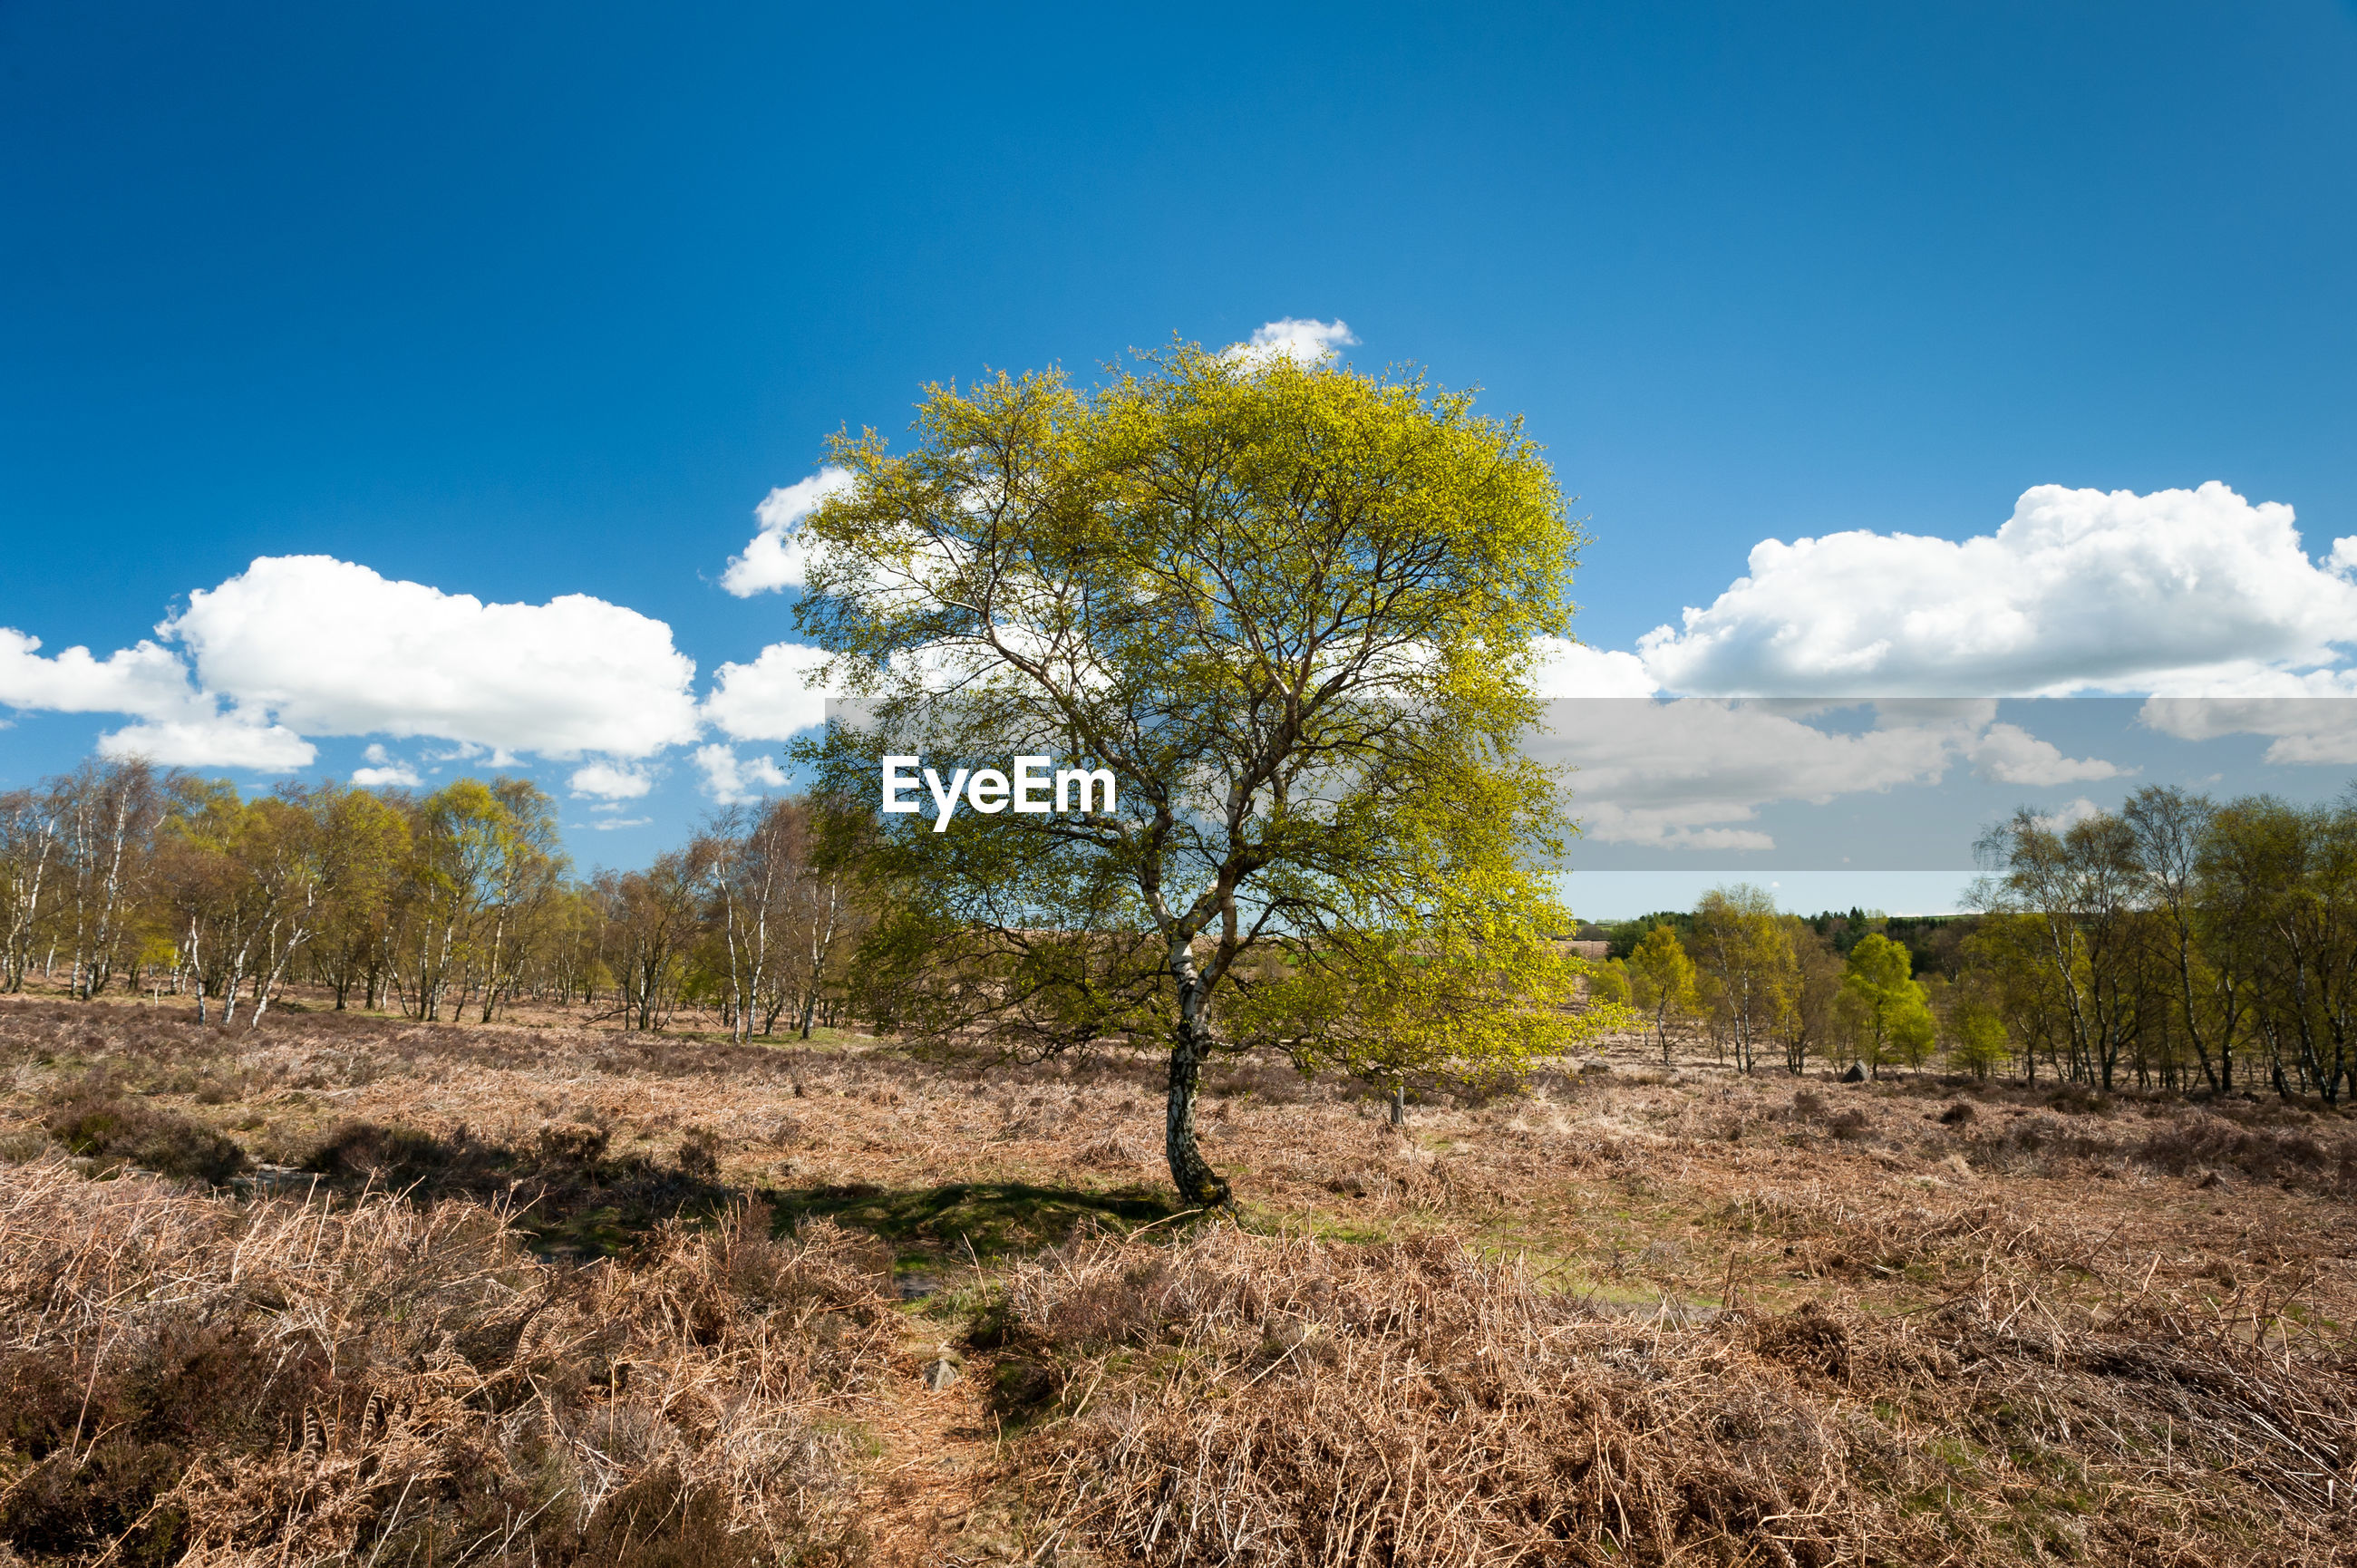 VIEW OF TREES ON FIELD AGAINST BLUE SKY